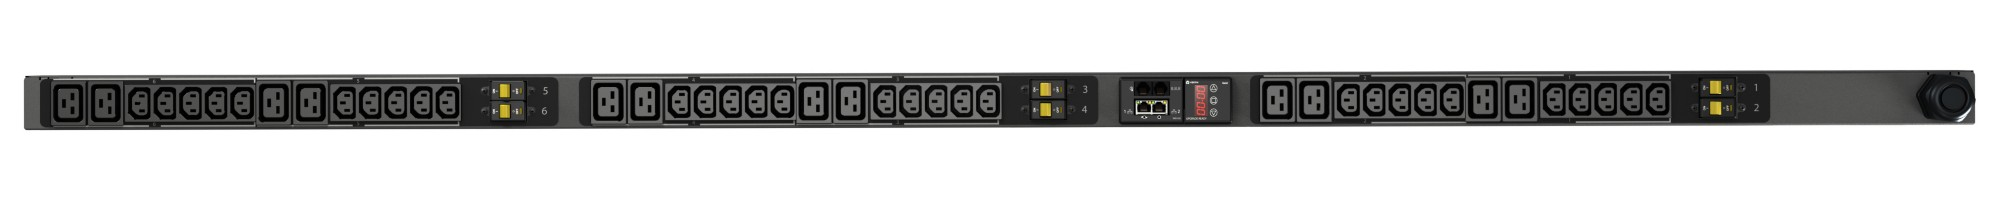 VERTIV VP8886 GEIST RPDU, MONITORED, 0U, INPUT IEC60309 230/400V 3X32A, OUTPUTS (30)C13 | (12)C19 POWER DISTRIBUTION UNIT